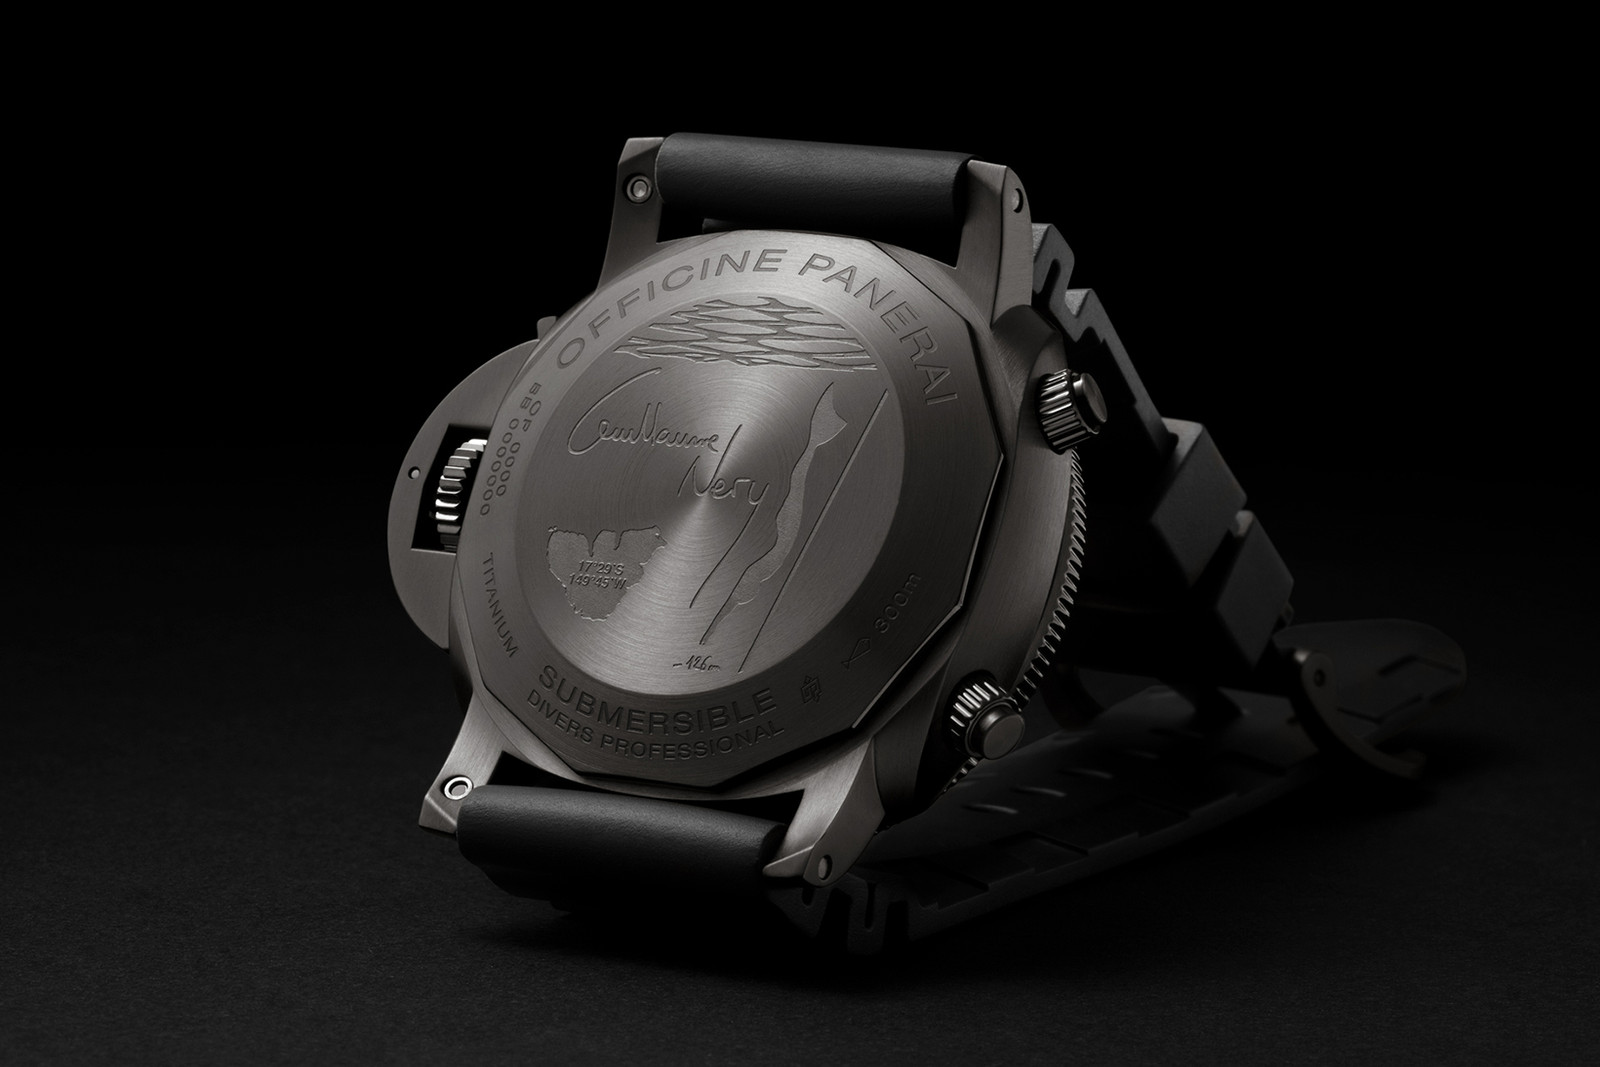 Panerai SIHH Luna Rossa Mike Horn Exclusive Watches Submersible Chrono Guillaume Néry